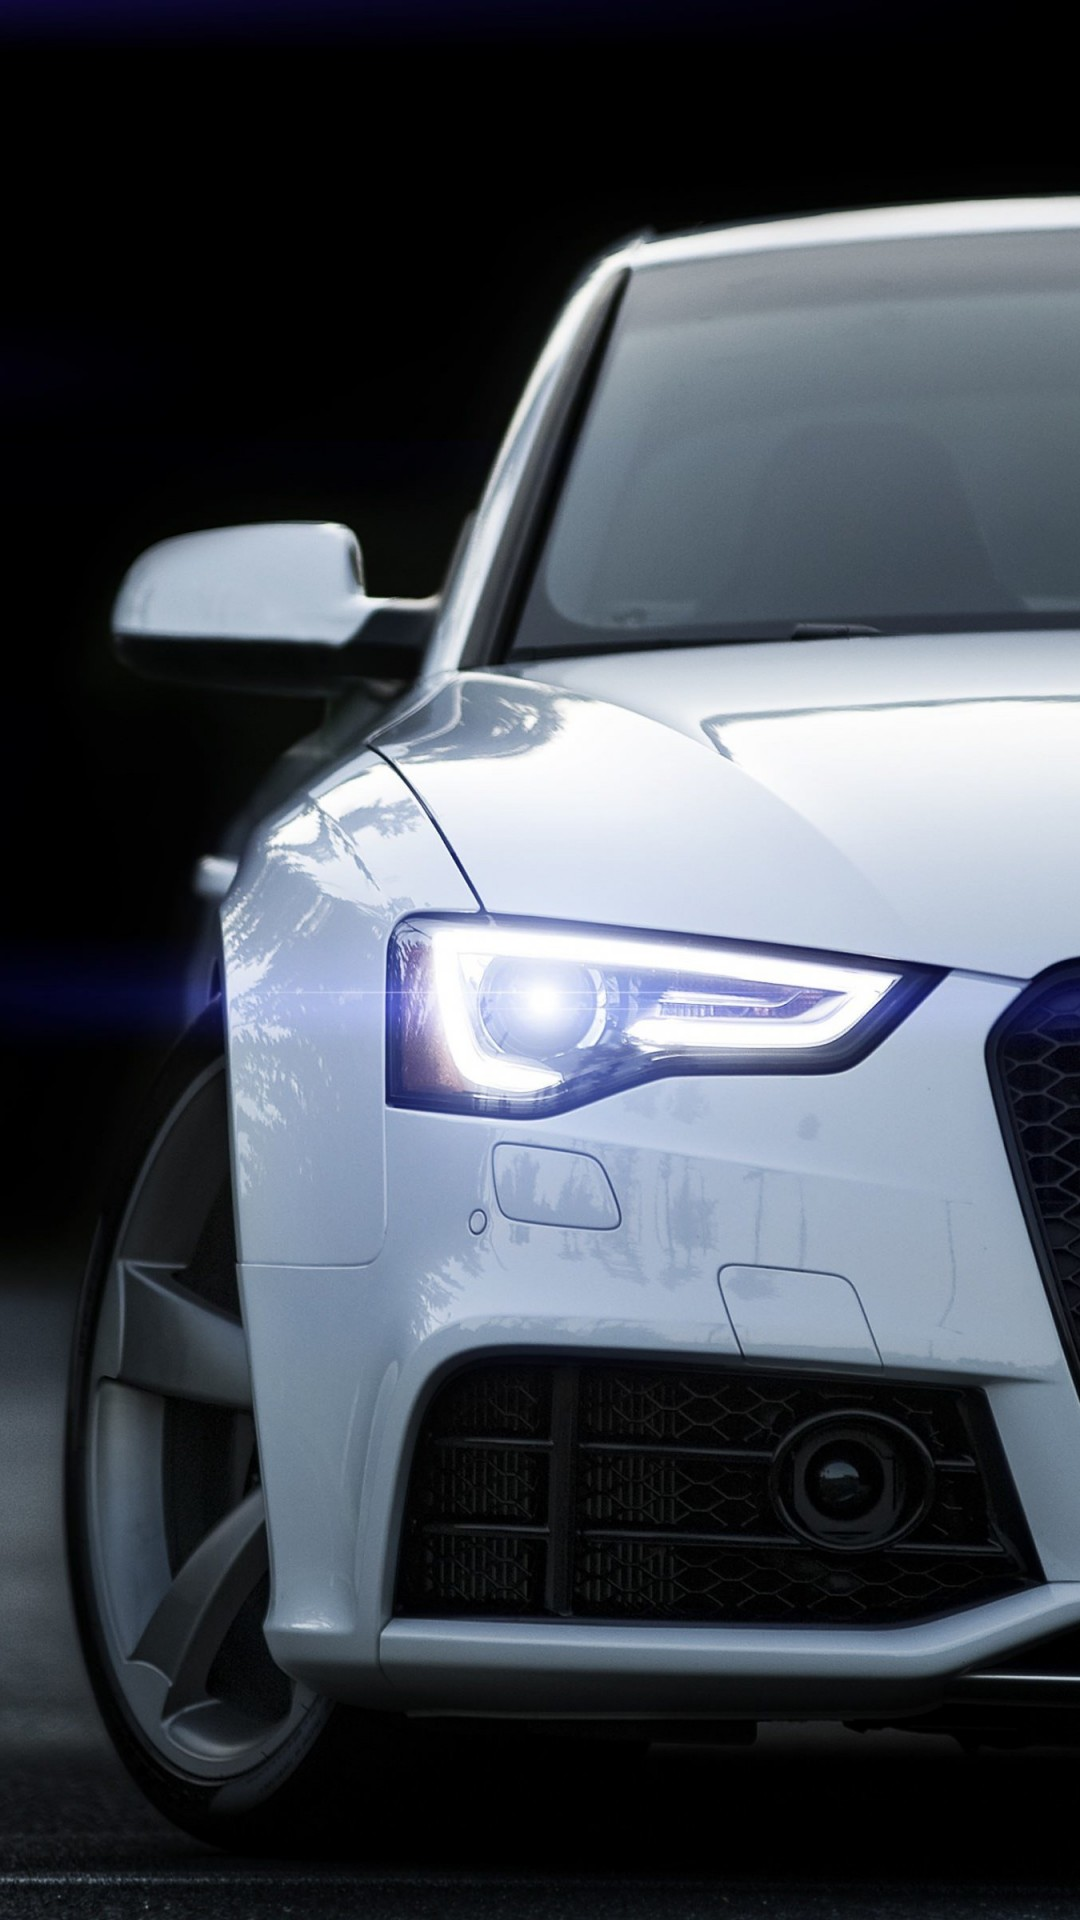 2015 Audi RS 5 Coupe Wallpaper for SAMSUNG Galaxy S4